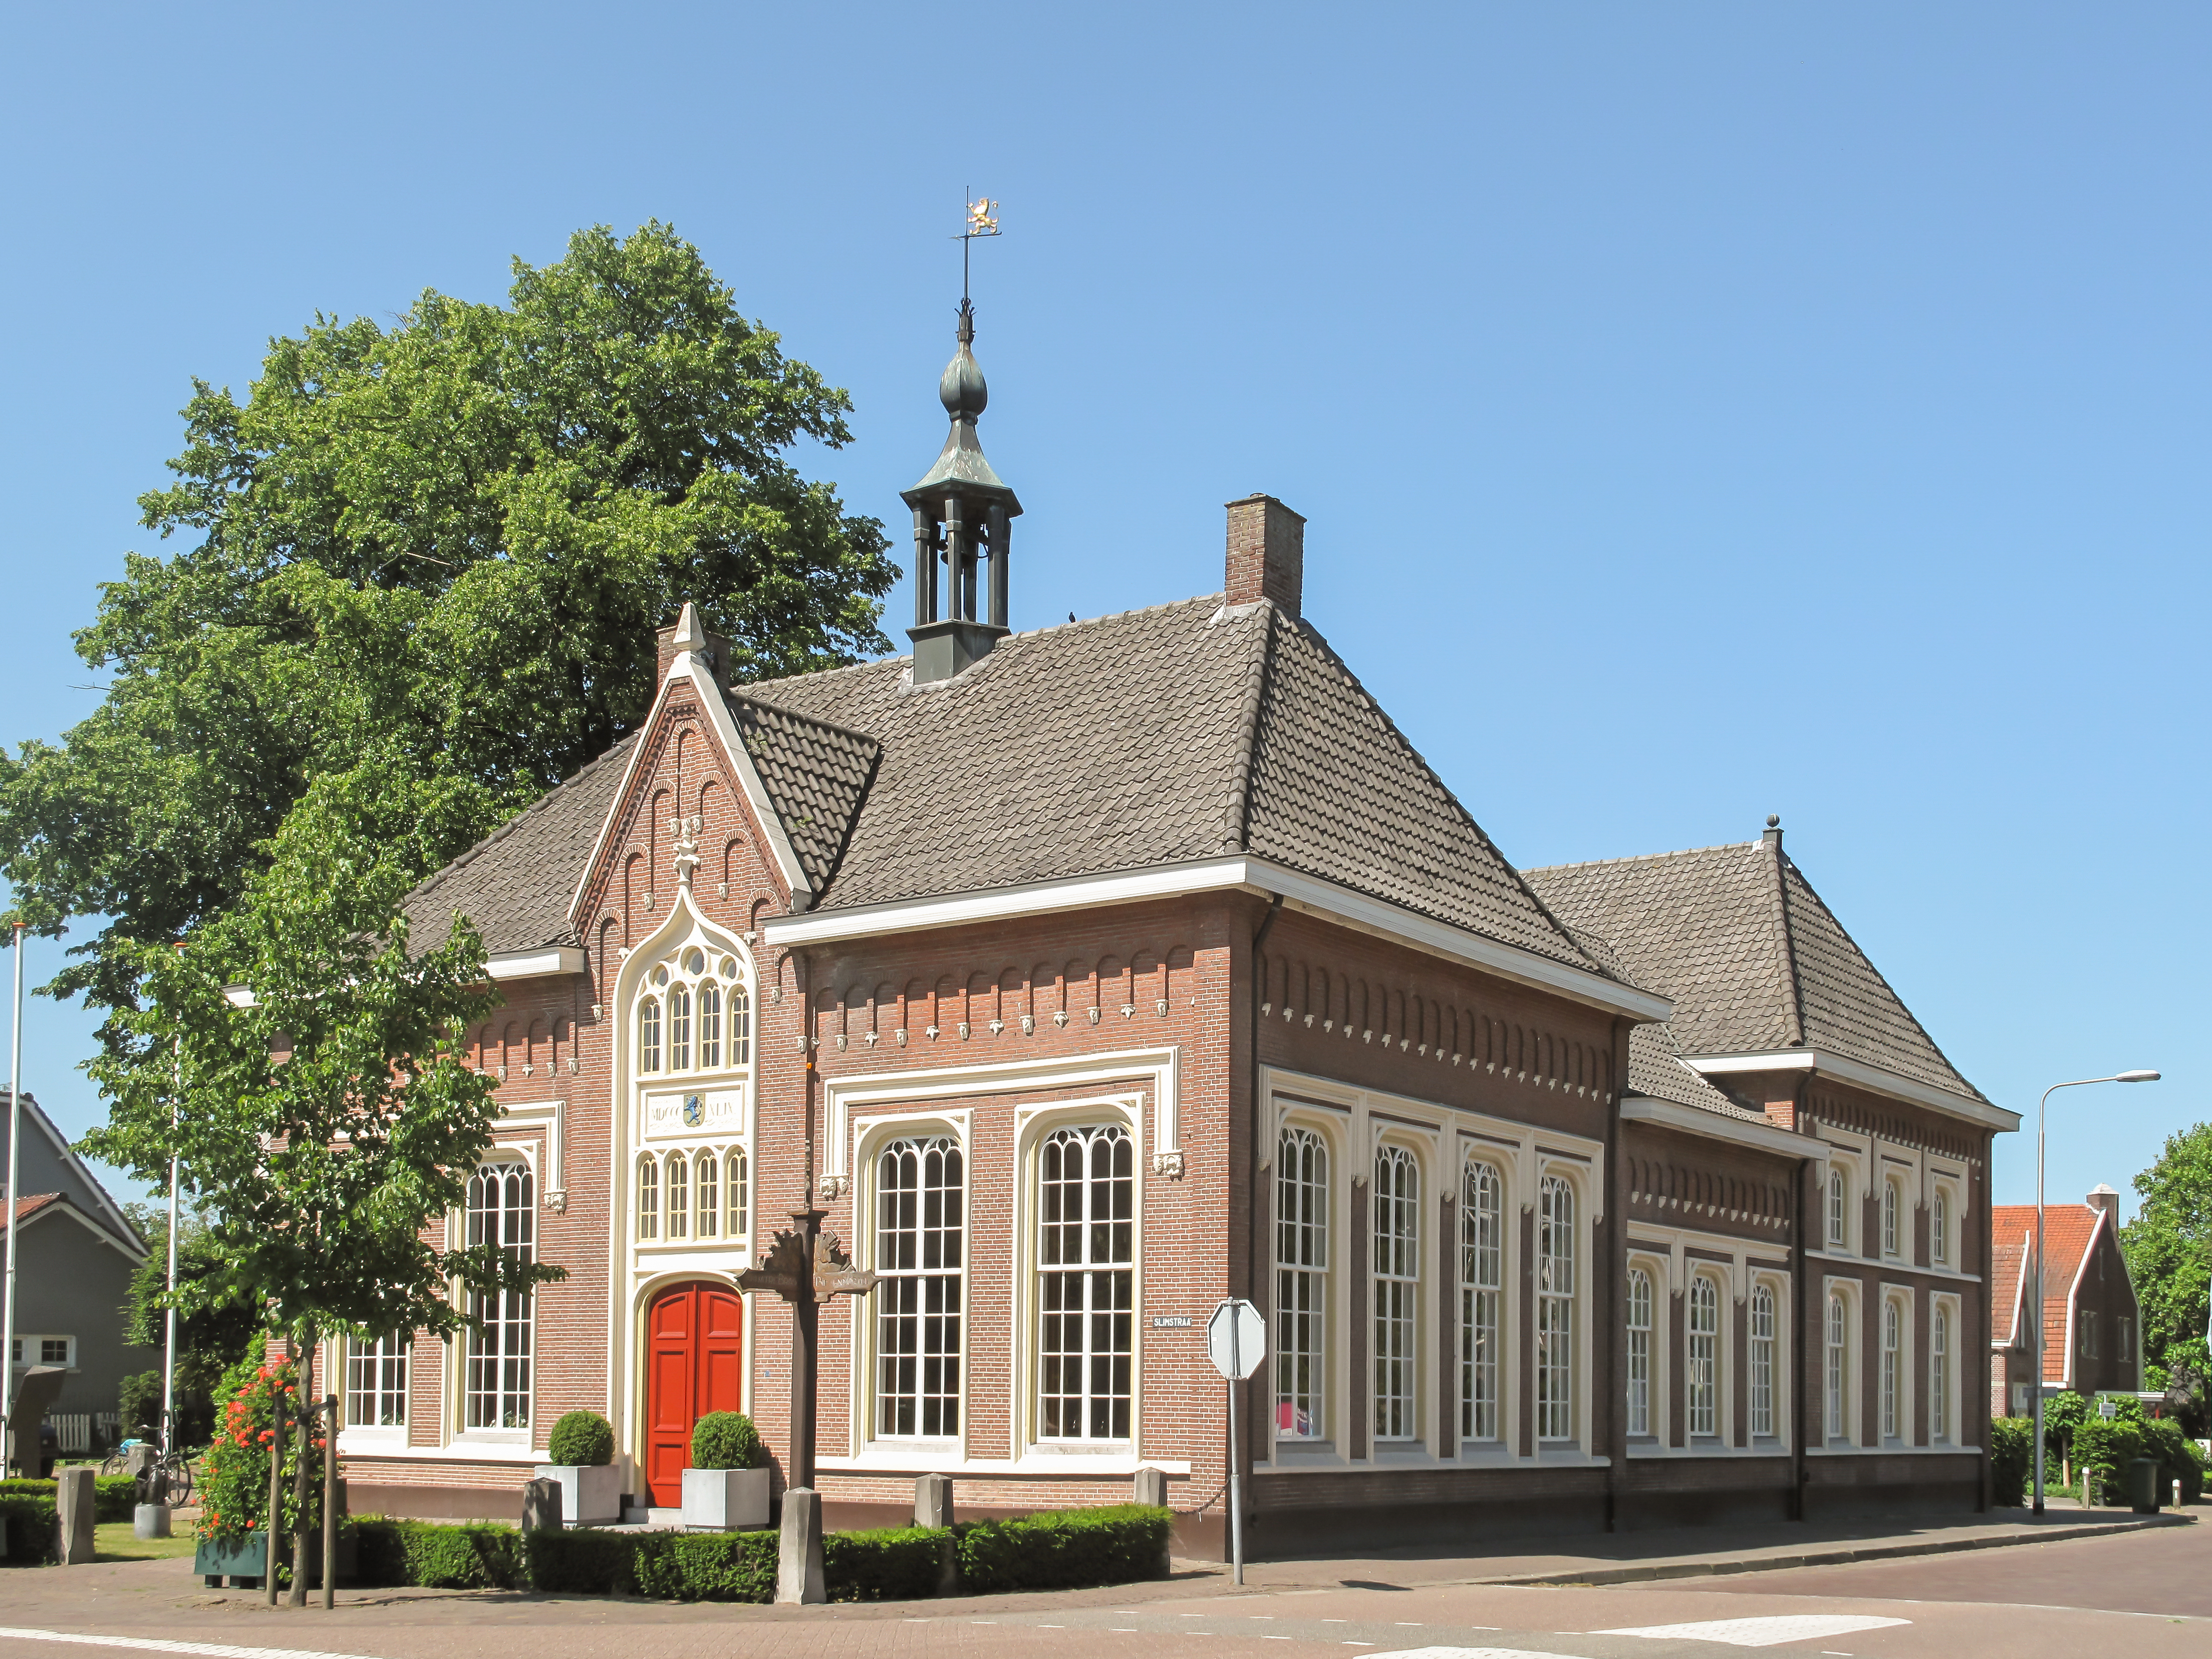 https://upload.wikimedia.org/wikipedia/commons/c/ca/Udenhout%2C_monumentaal_pand_foto4_2011-05-30.JPG